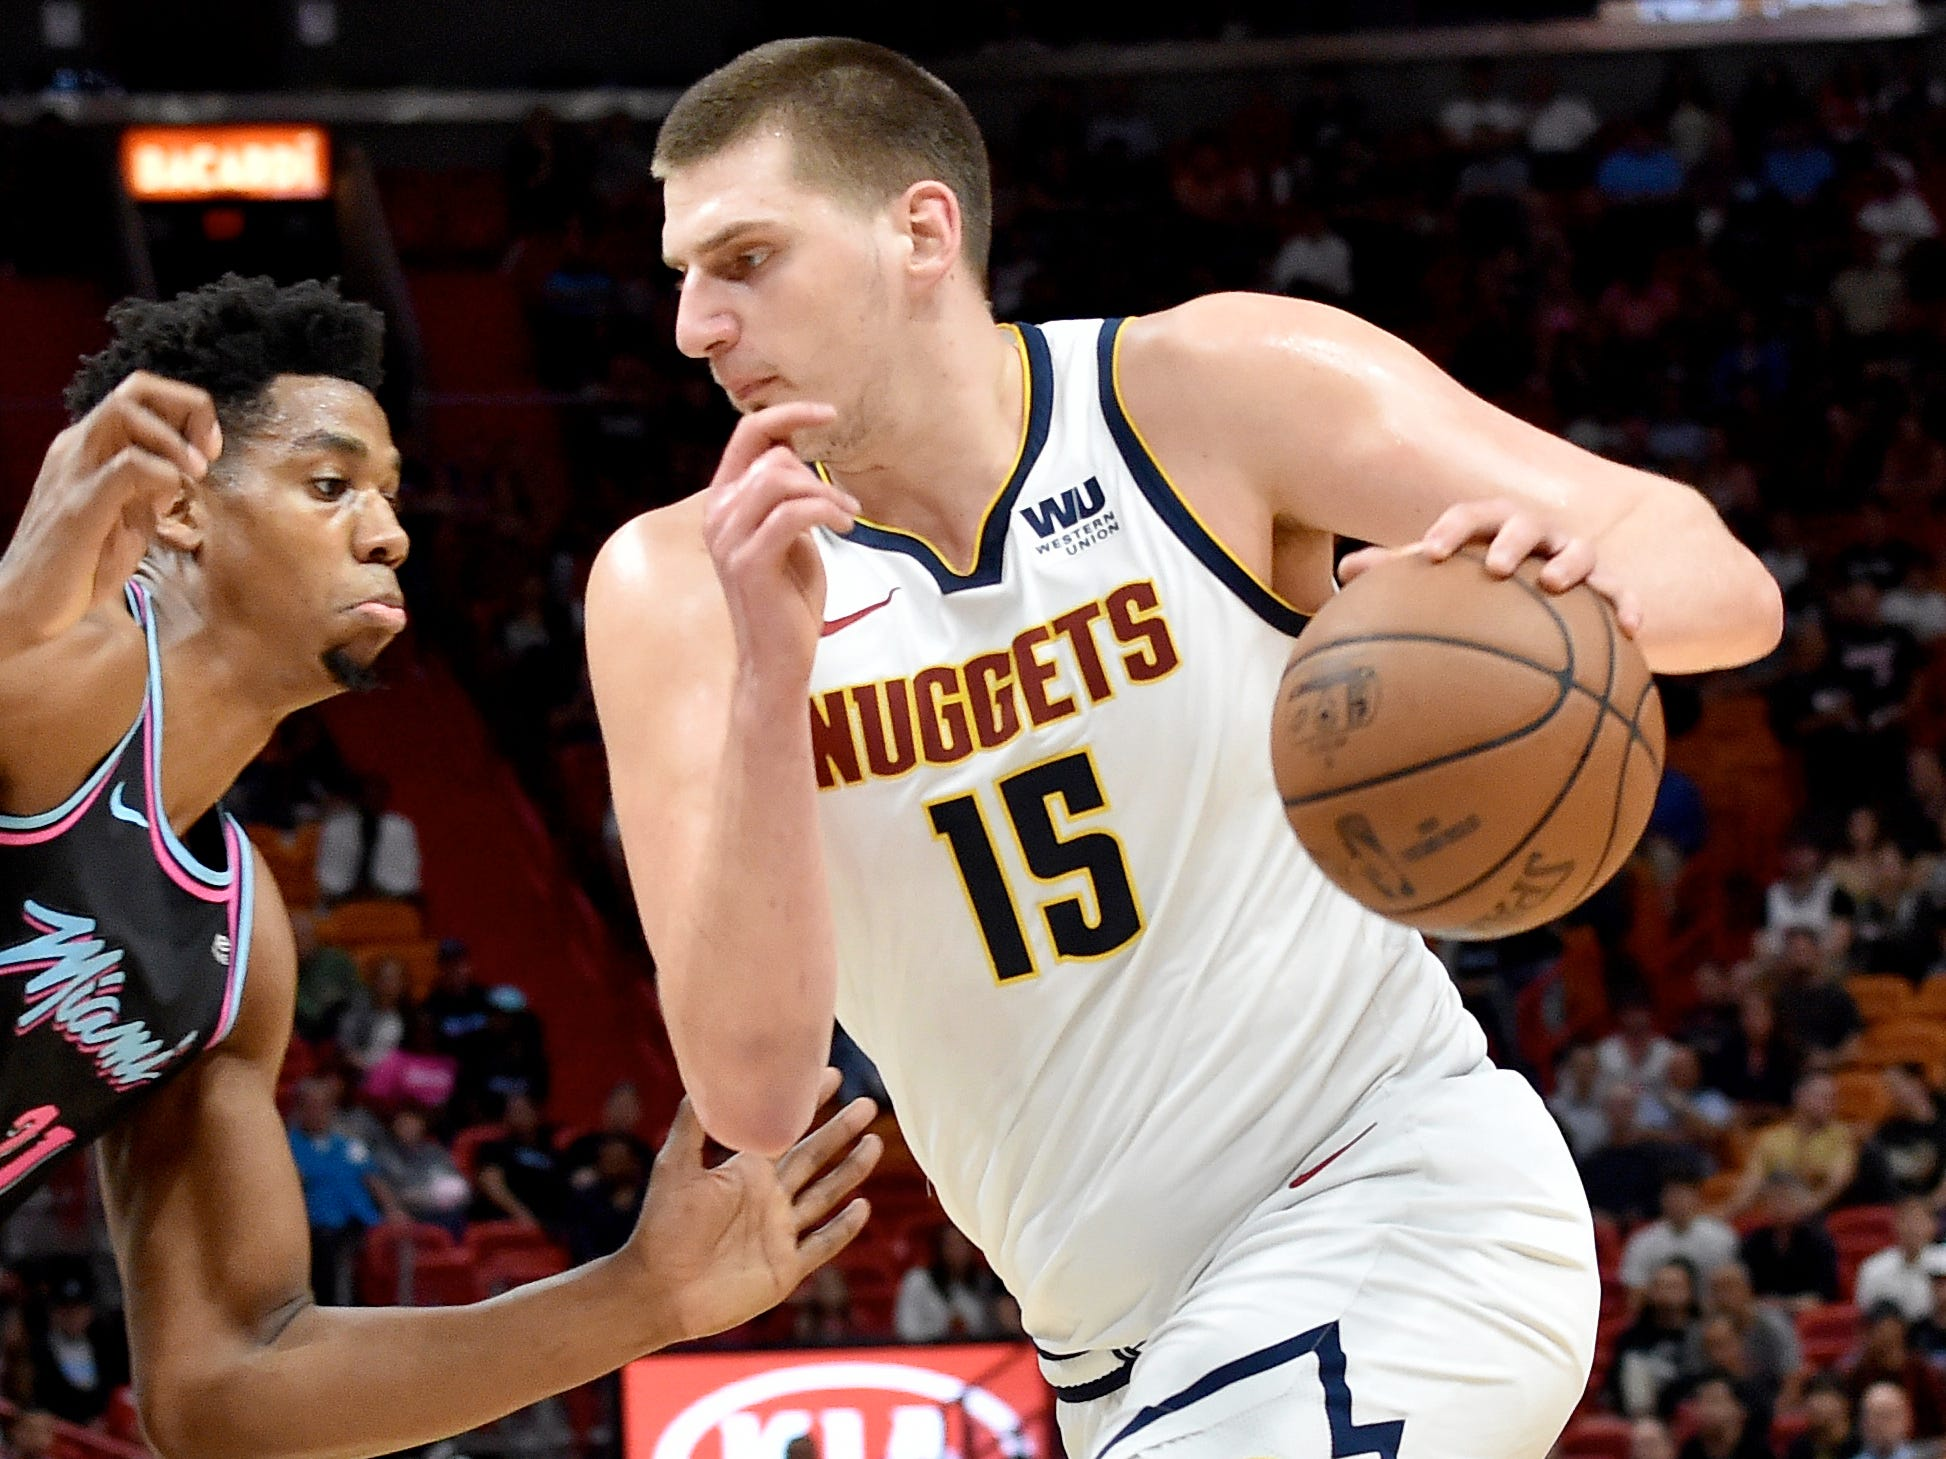 47. Nikola Jokic, Nuggets (Jan. 8): 29 points, 11 rebounds, 10 assists in 103-99 win over Heat (fourth of season).